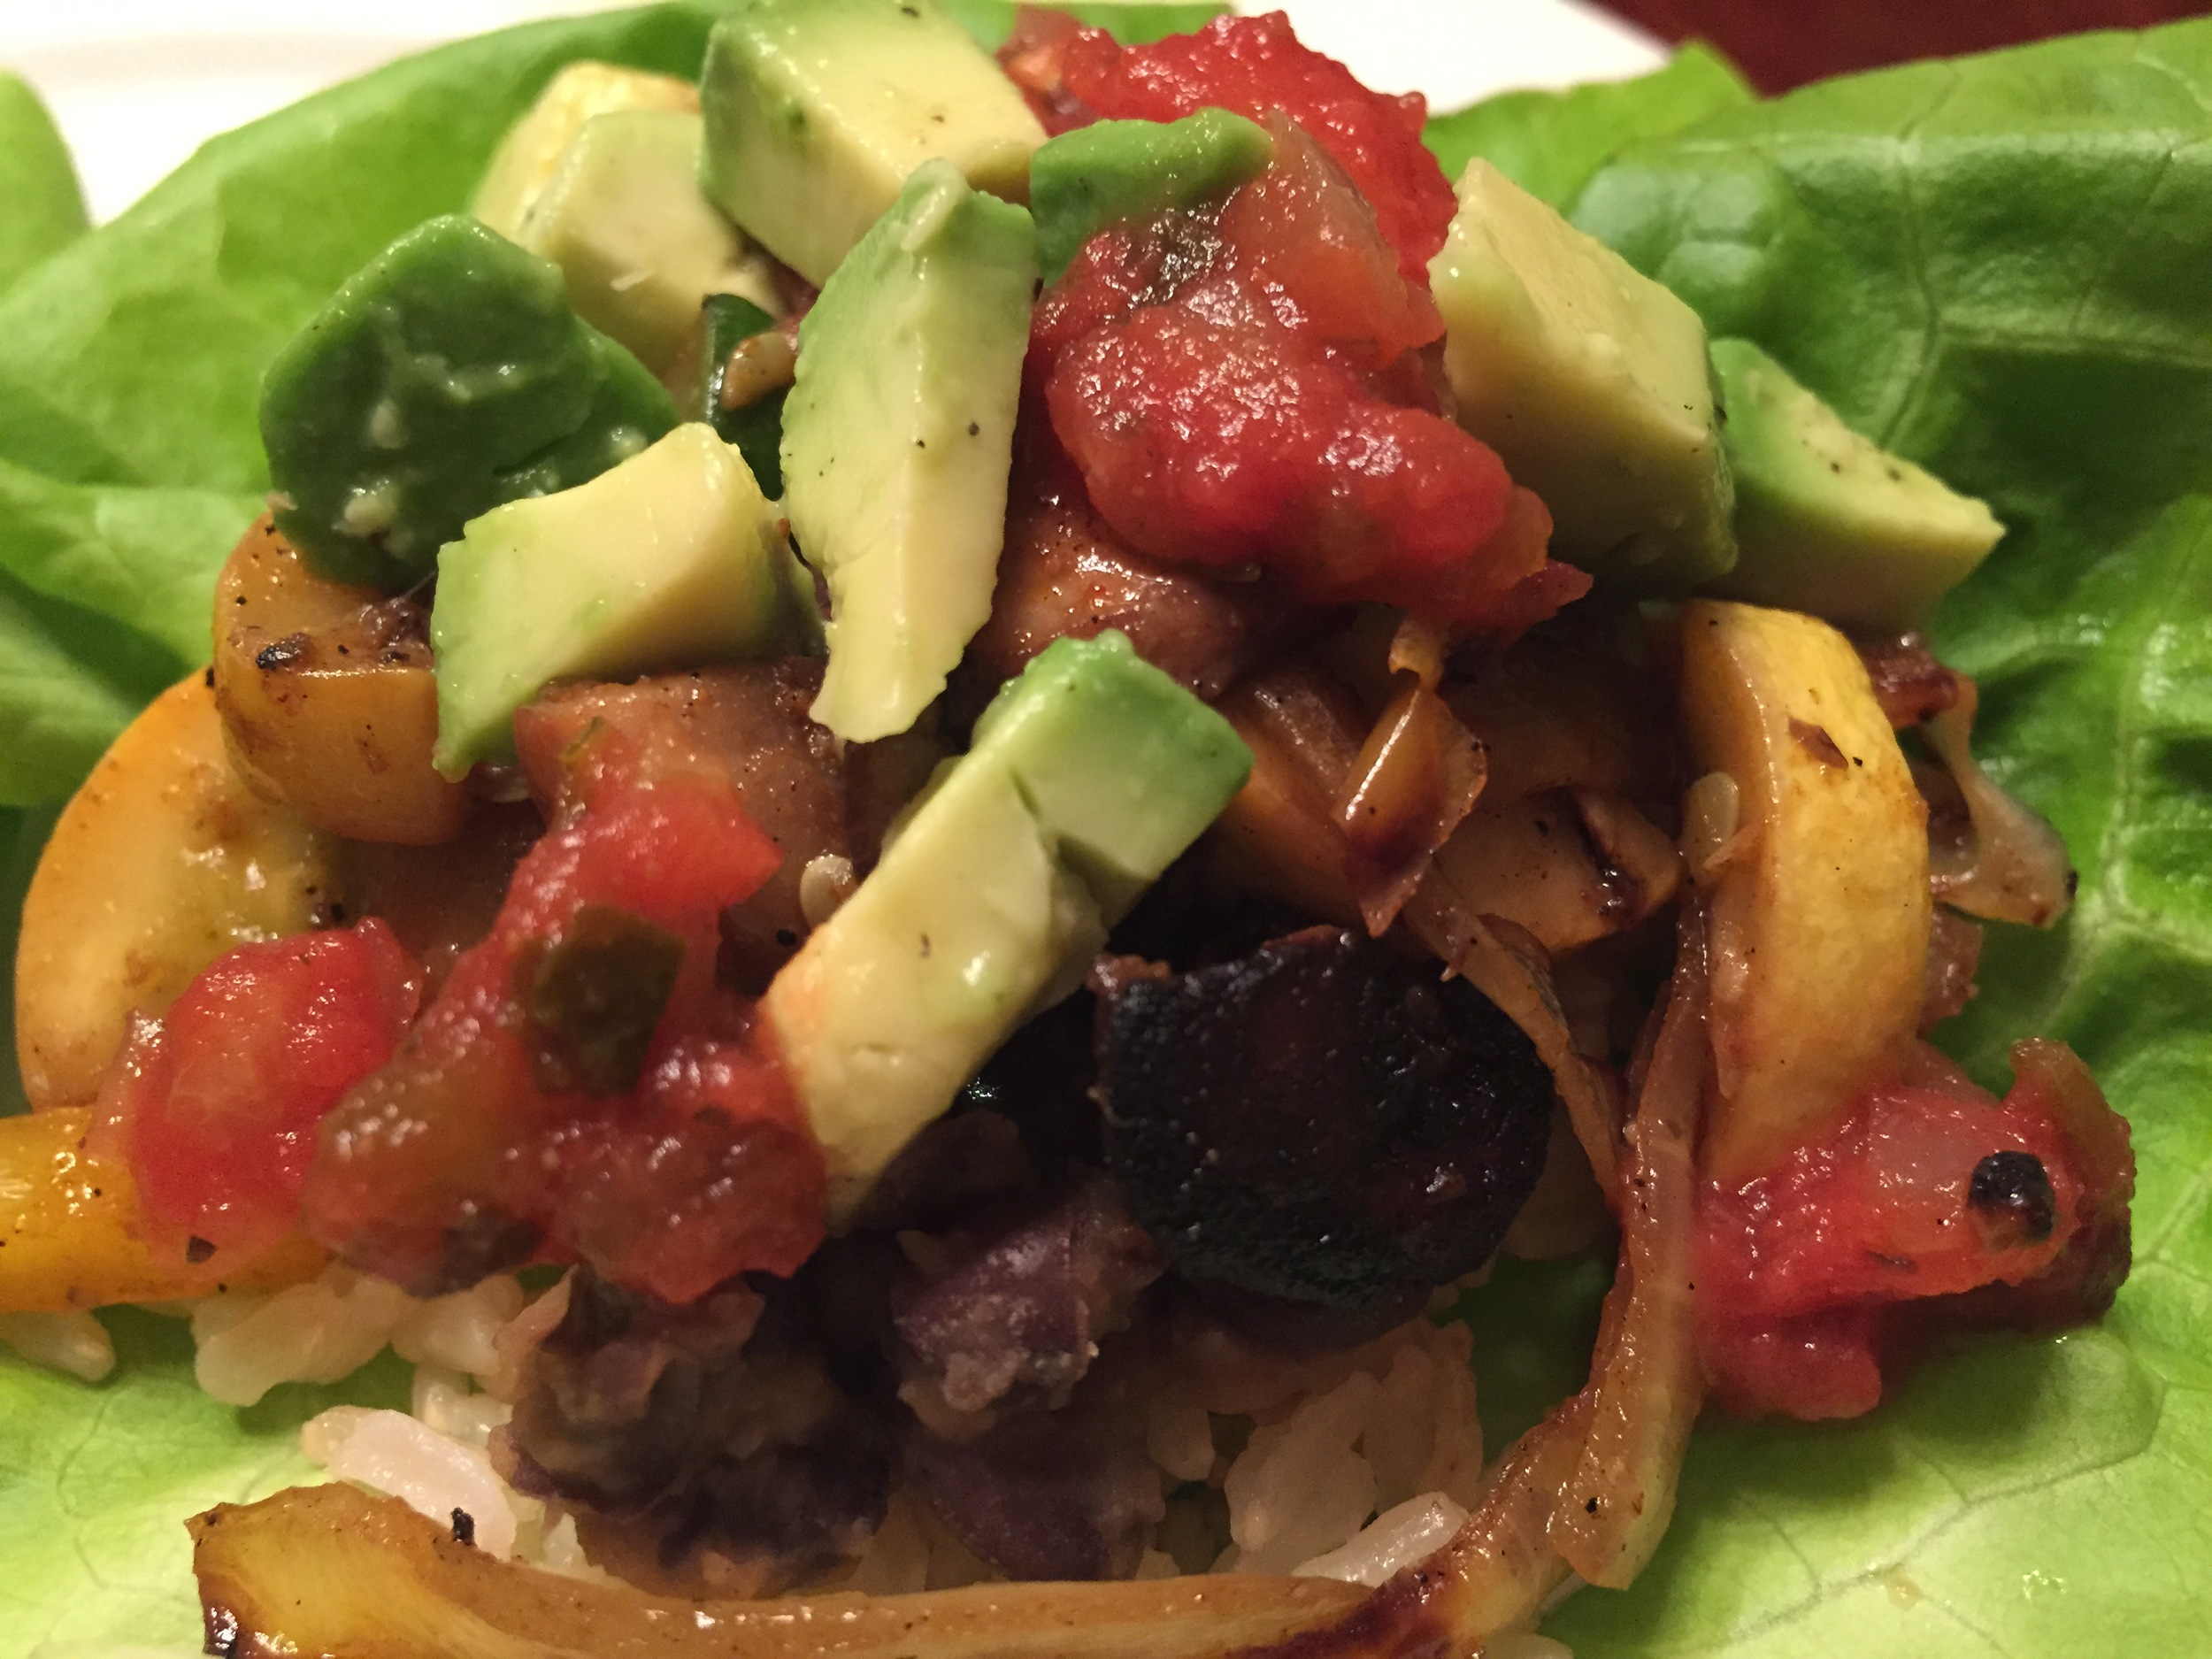 Grilled Veggie Fajitas with Re-Fried Black Beans